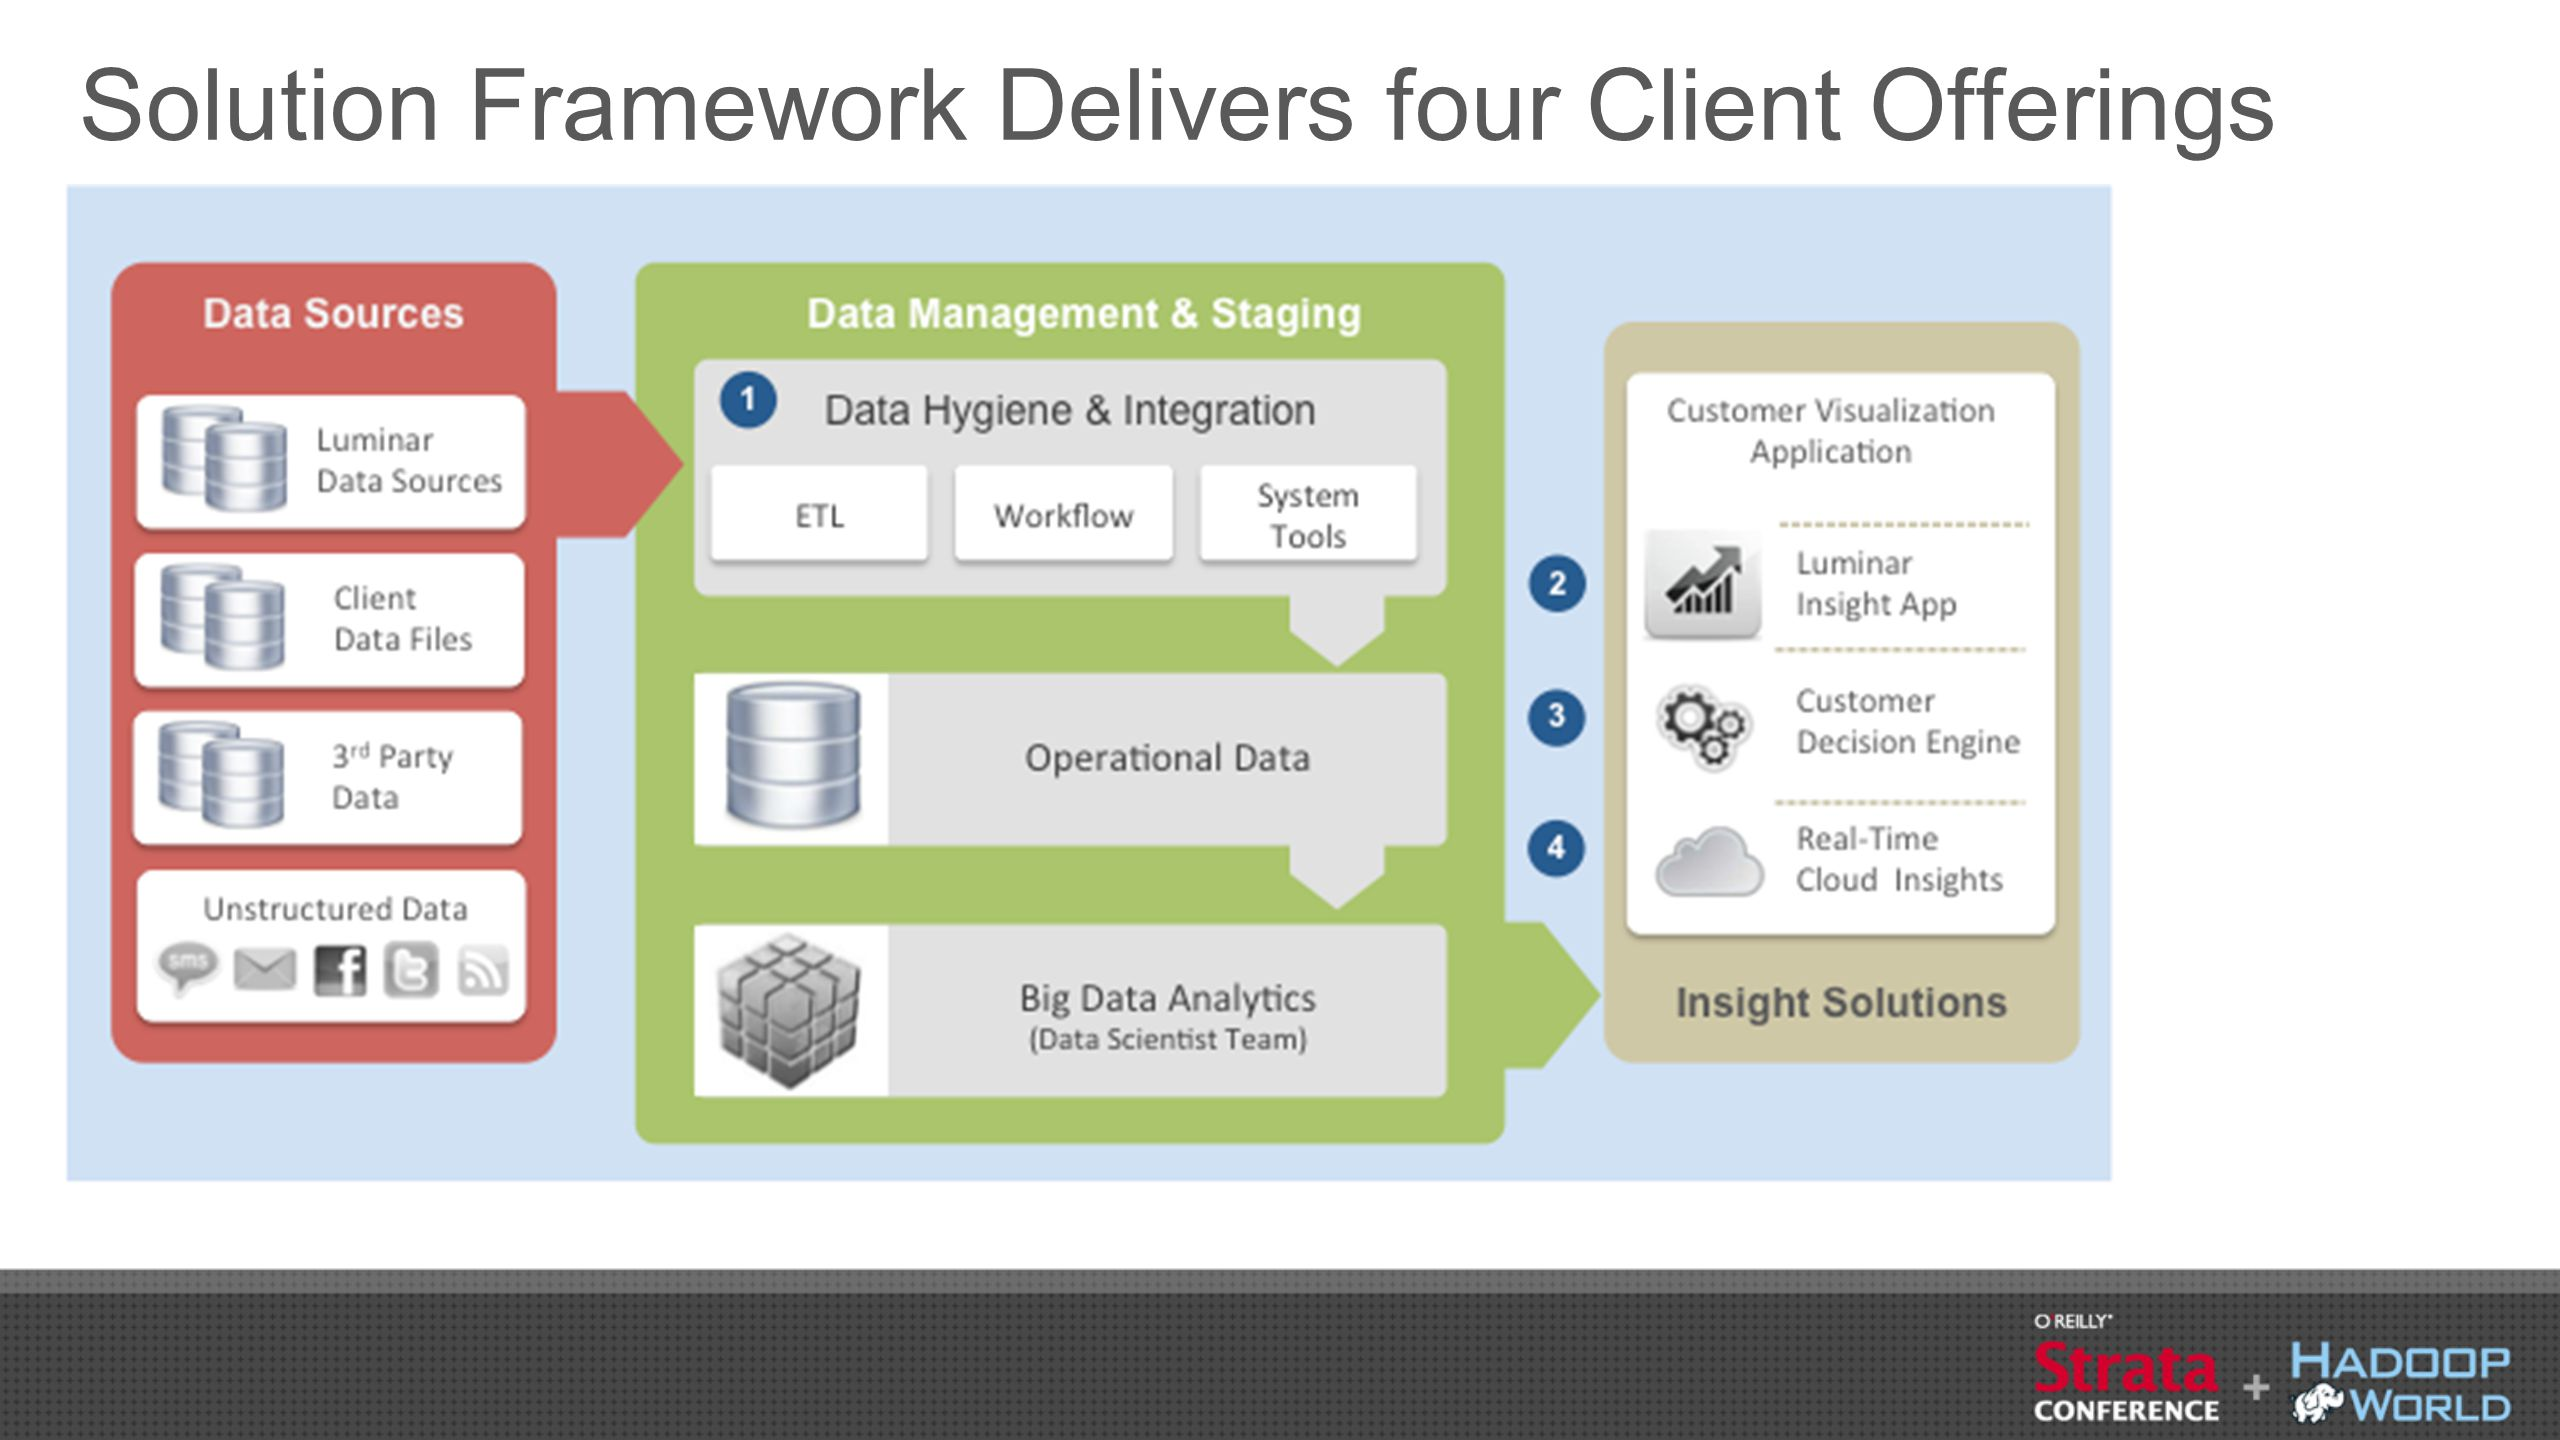 Solution Framework Delivers four Client Offerings